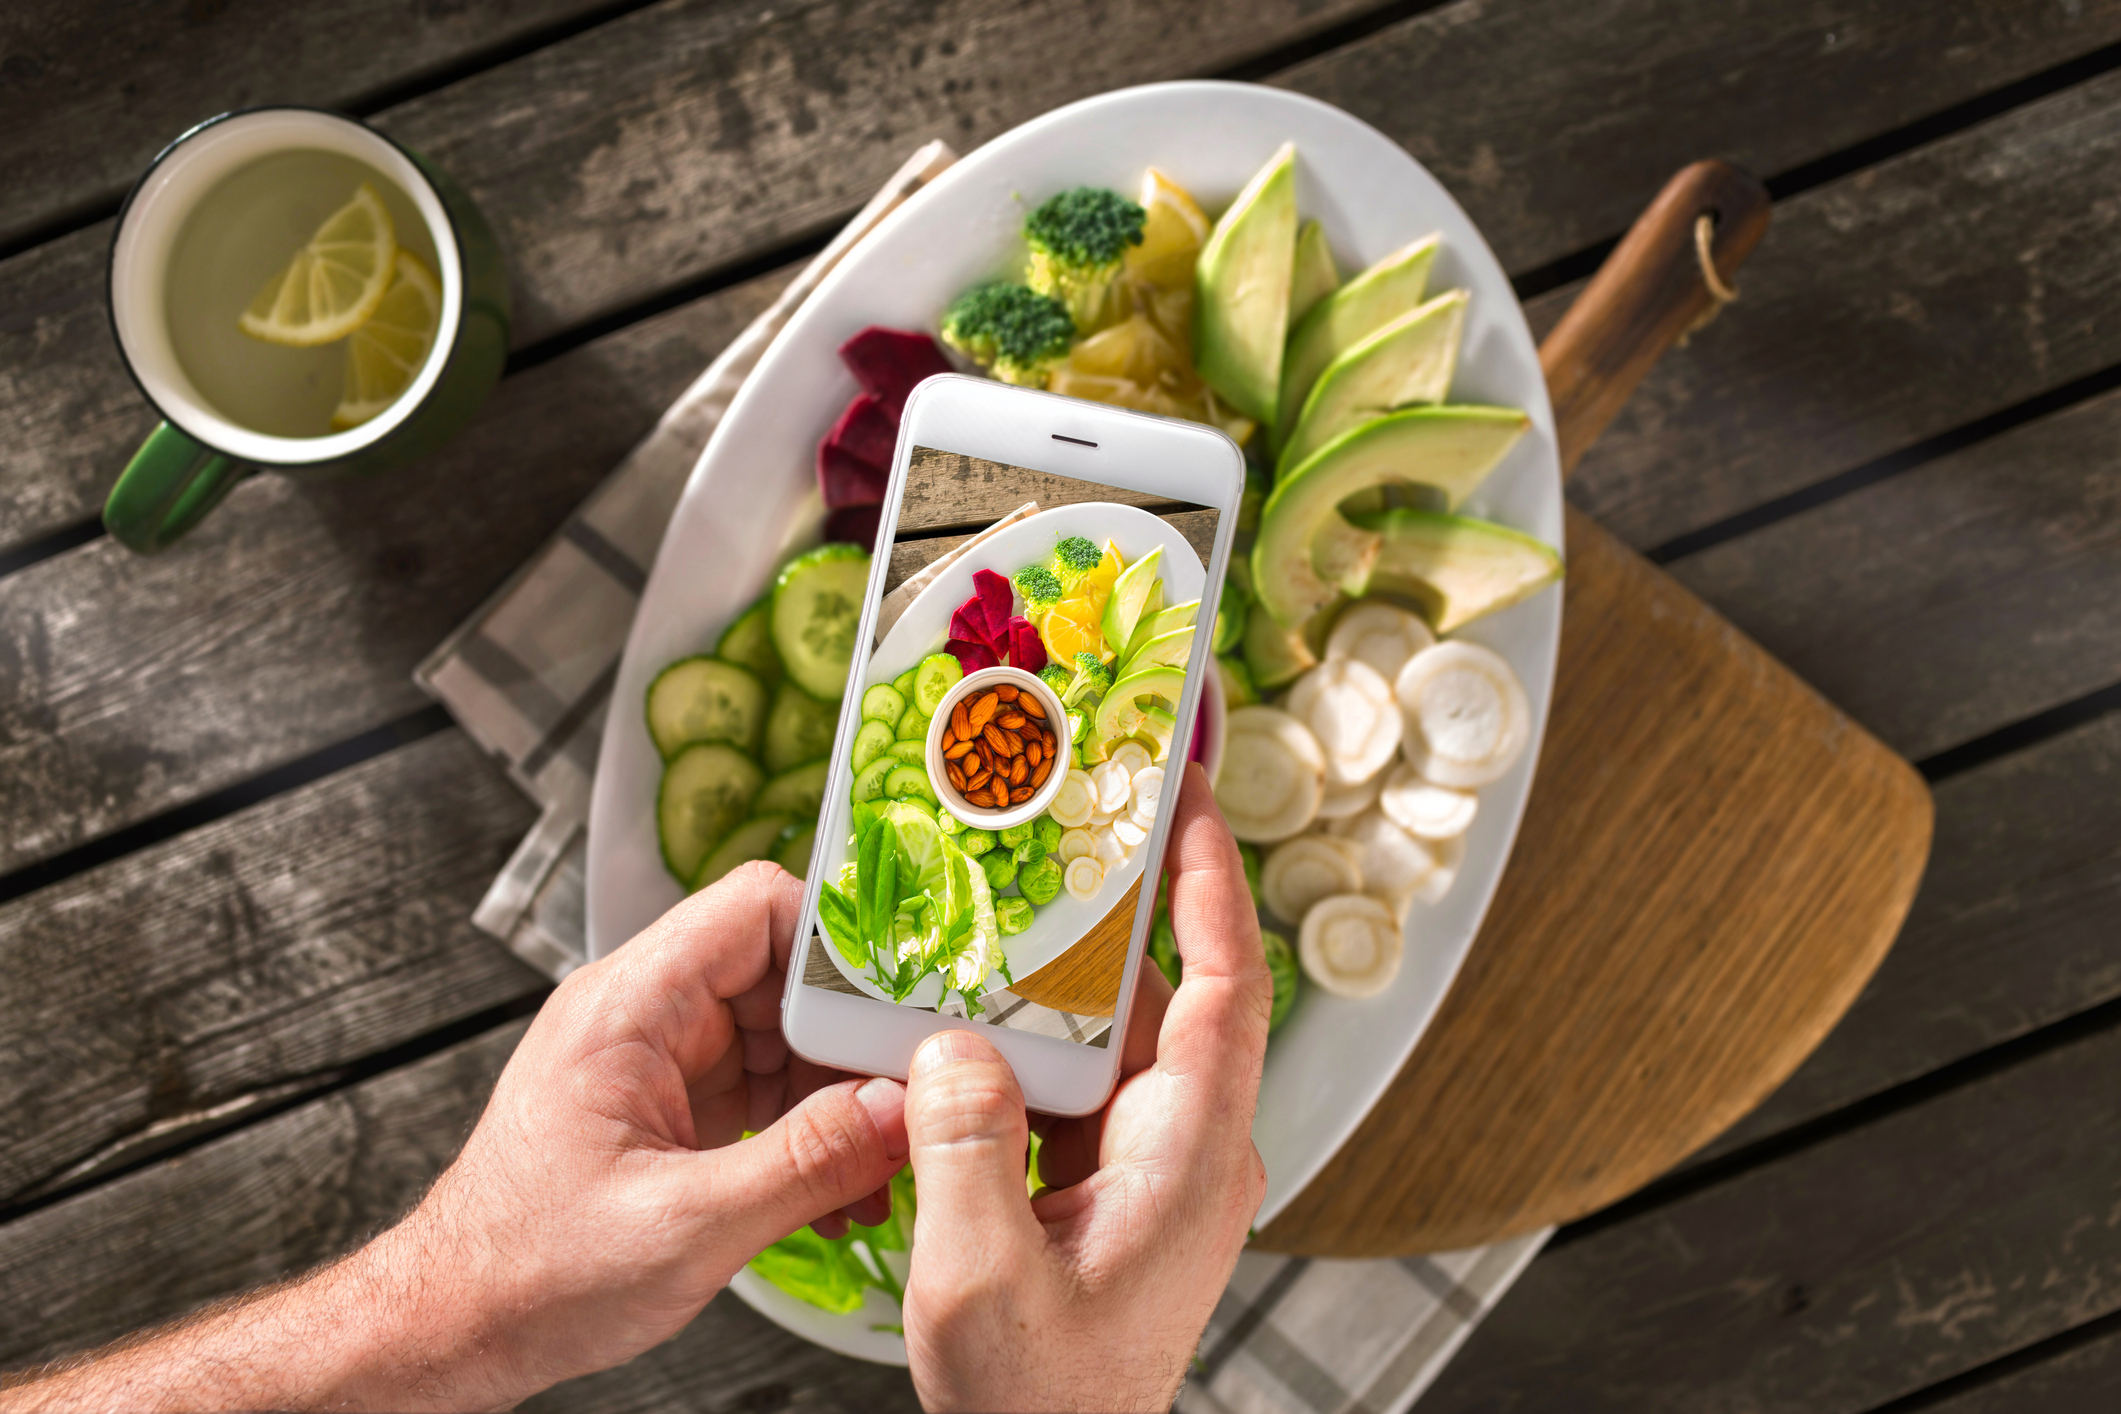 Food photography on phone. Food blogging content concept. Male hands take photo of vegan plate with screen phone